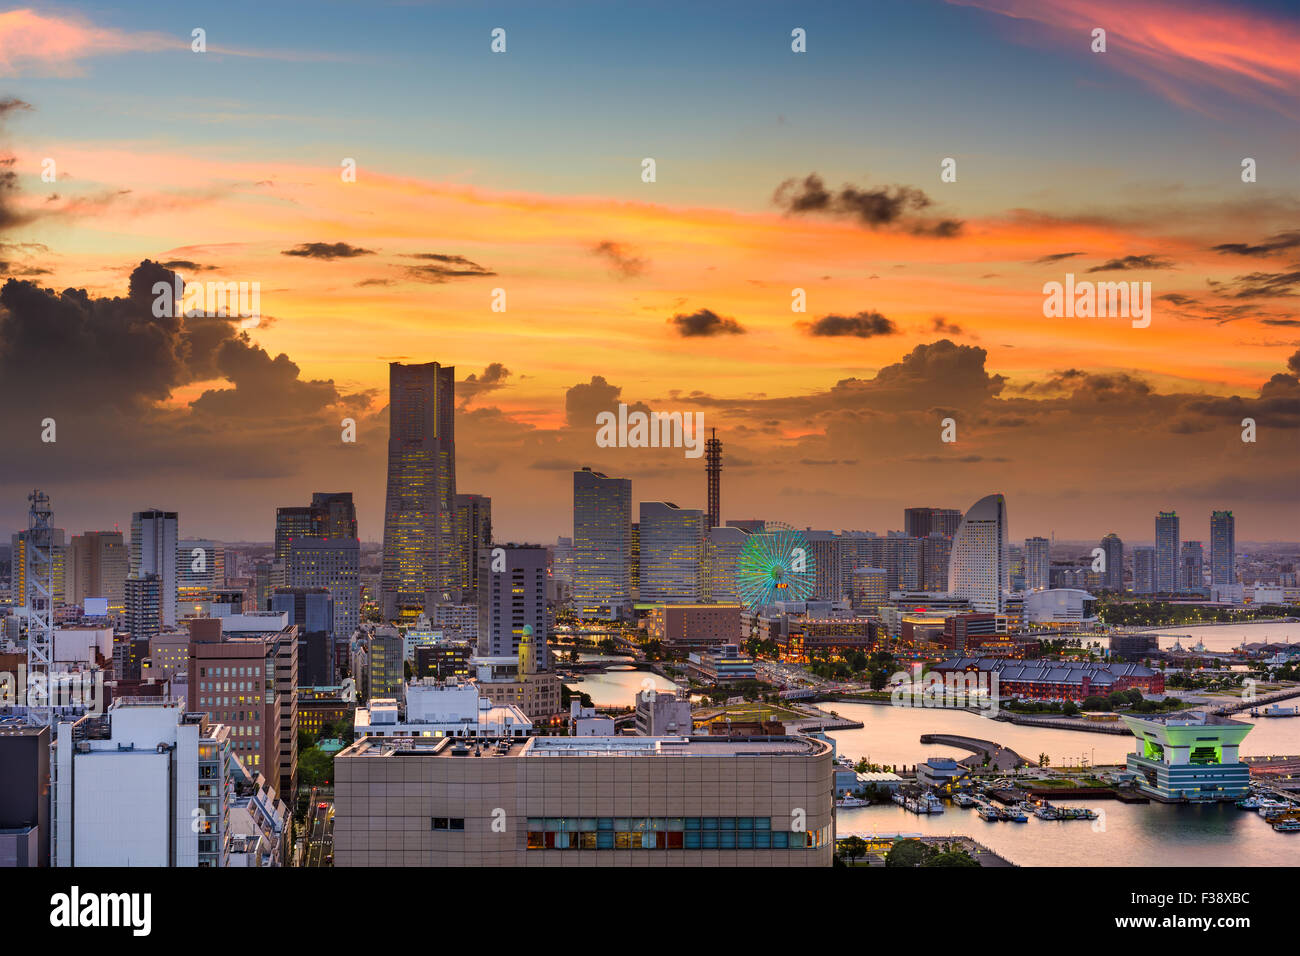 Yokohama, Japan city skyline. - Stock Image